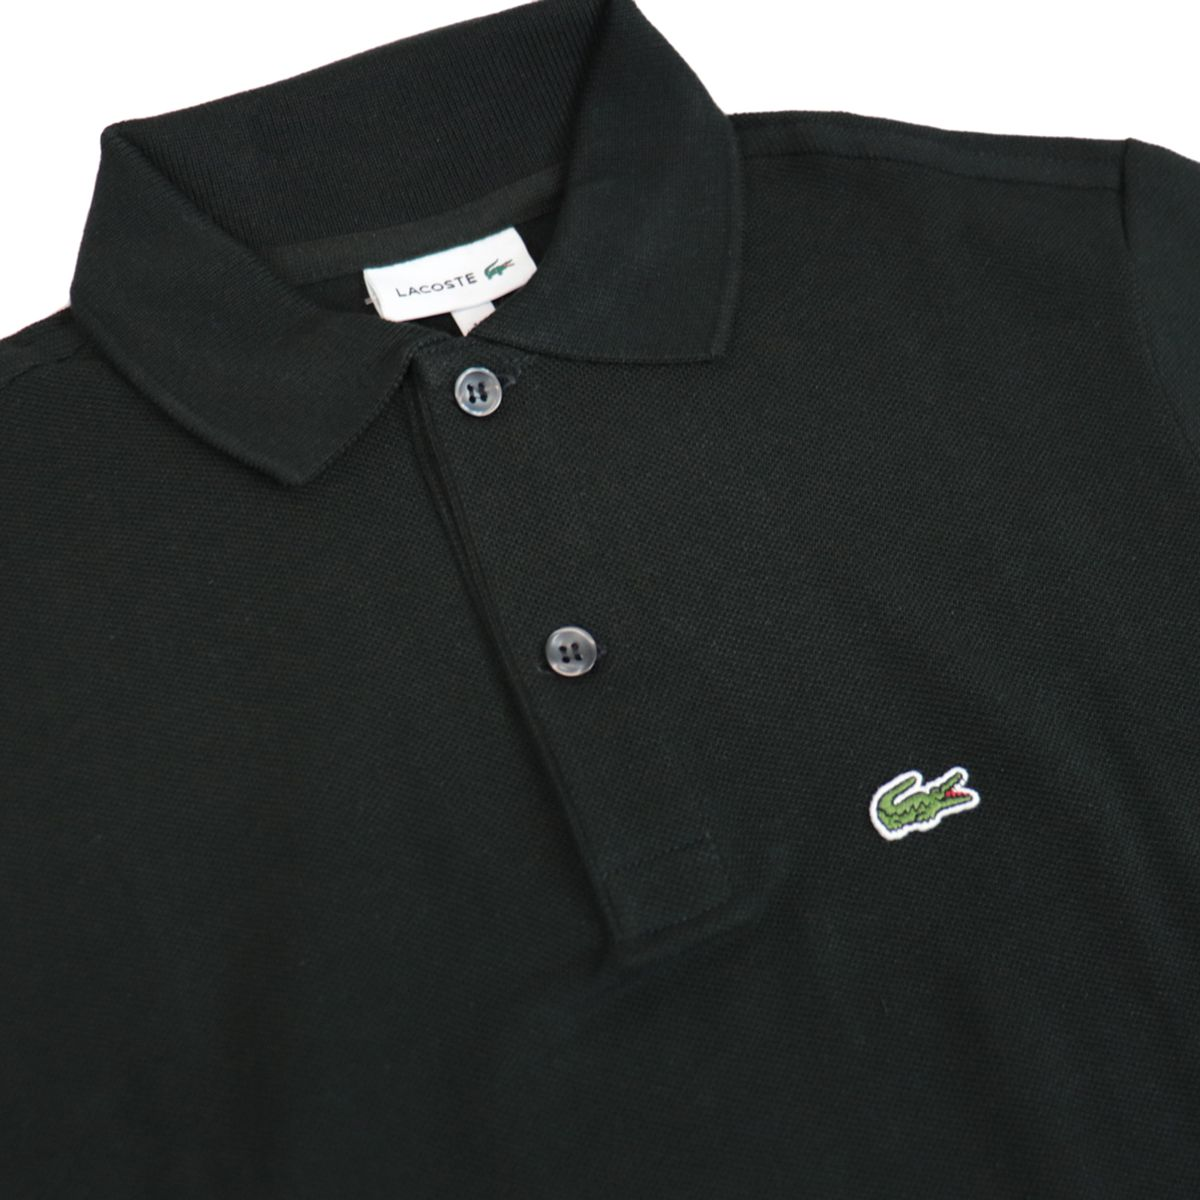 Cotton piqué polo shirt with 2 buttons with logo Black Lacoste